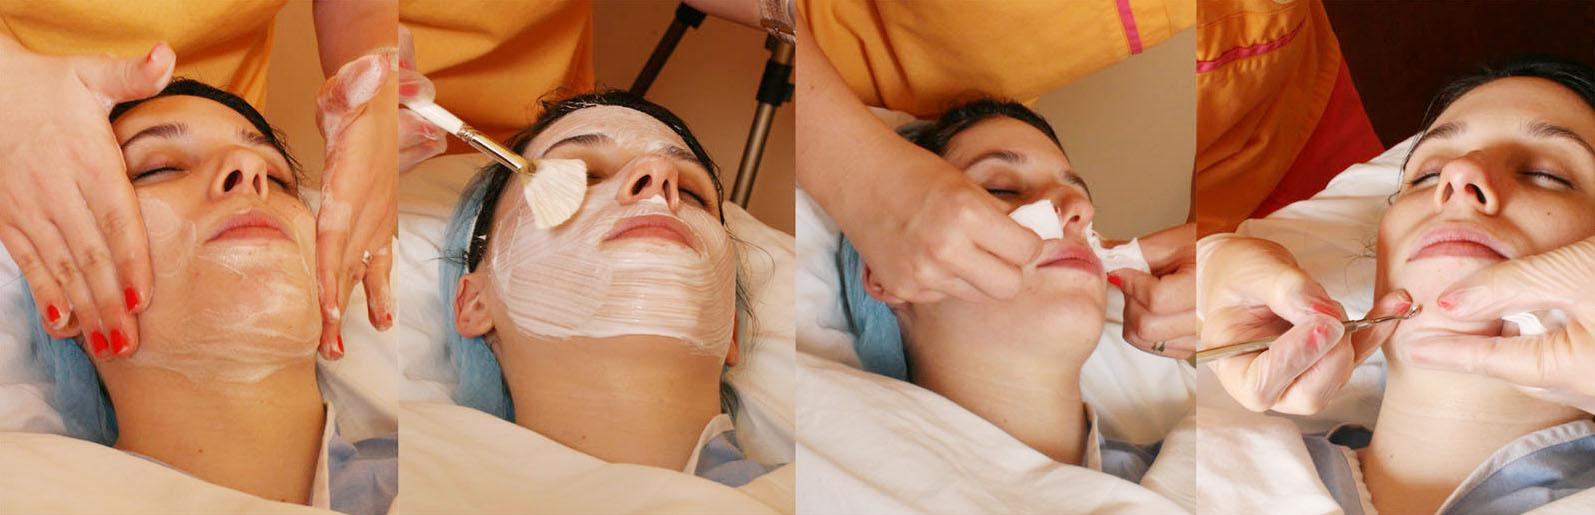 Acne Facial Pores Extraction Philadelphia Medical Facials Pa